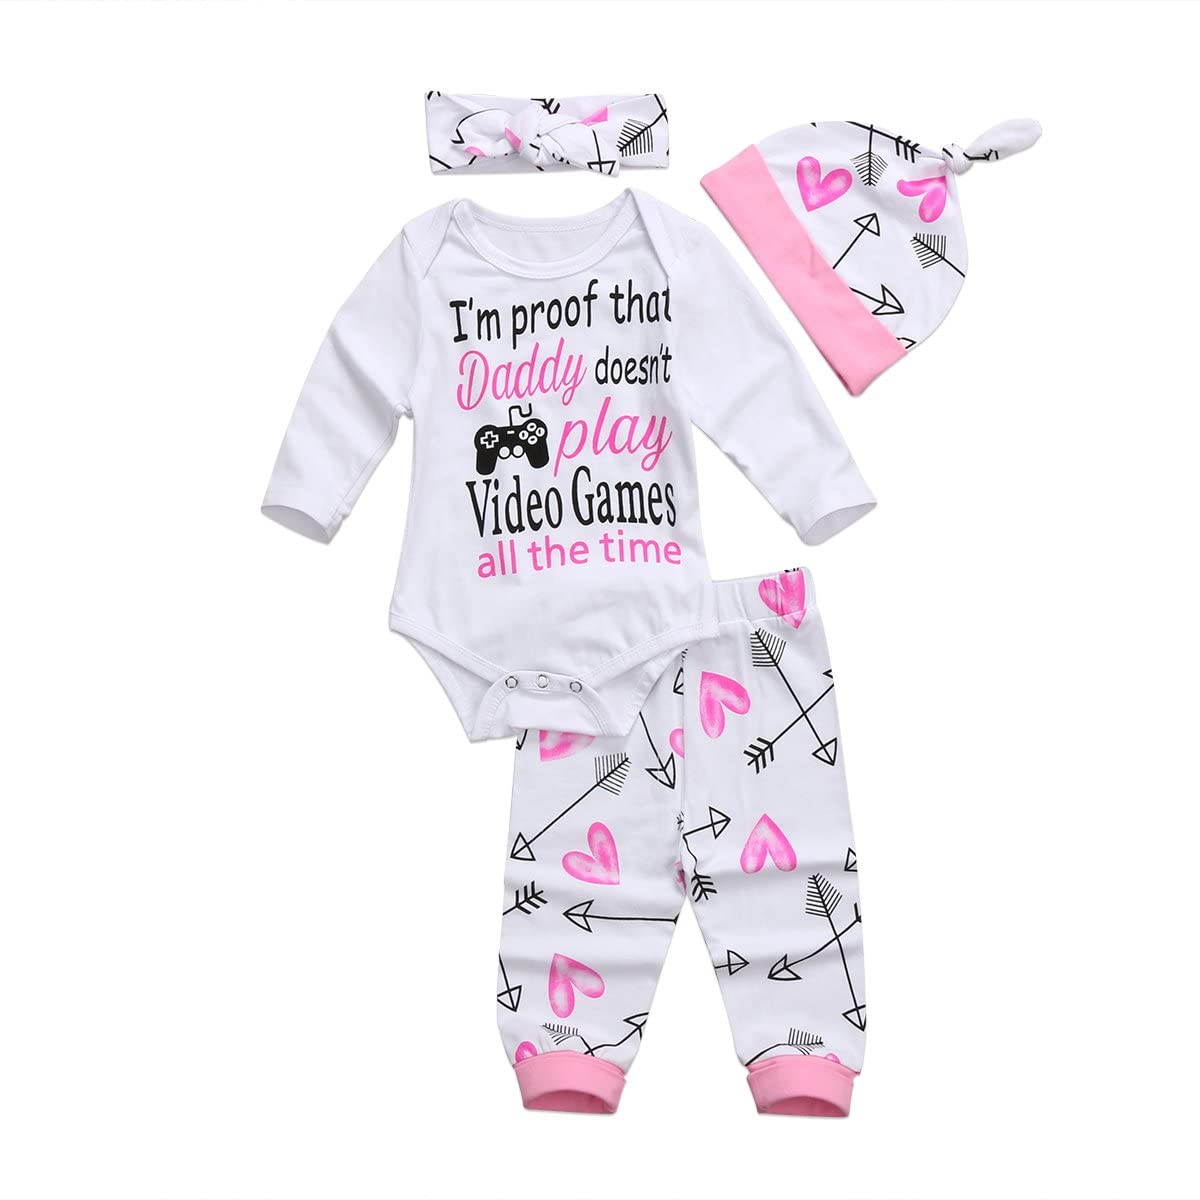 4PCS/Set Baby Girls Clothes Set Newborn Infant Toddler Princess Letter Romper Arrow Heart Pants Hats Headband